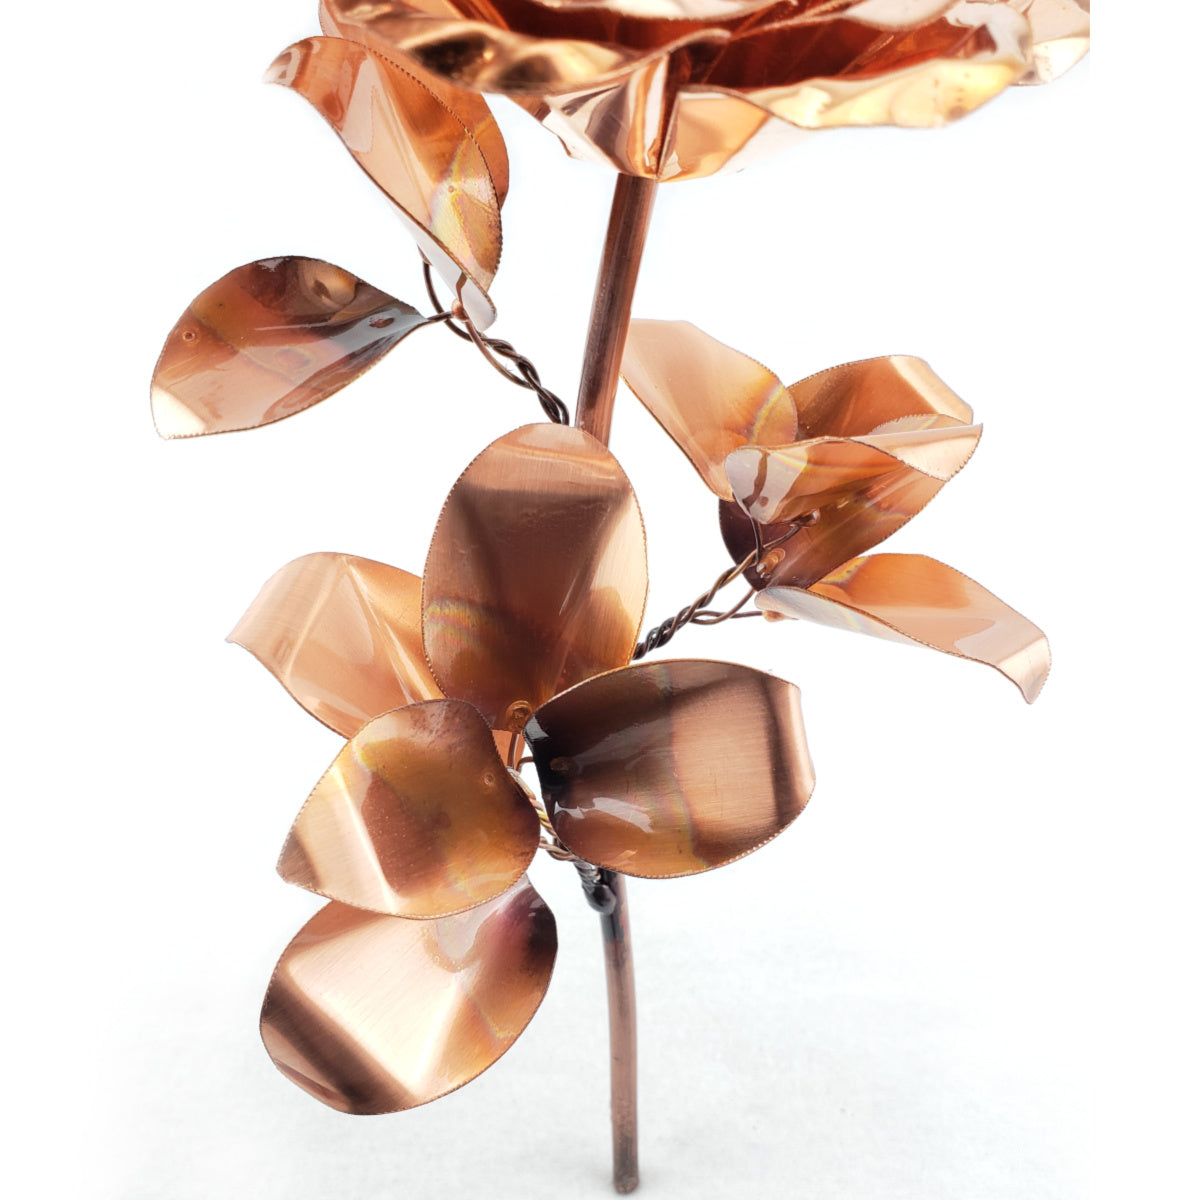 Timeless Rose - Gifts for birthdays, weddings, anniversary, valentines - Steel Rose Company